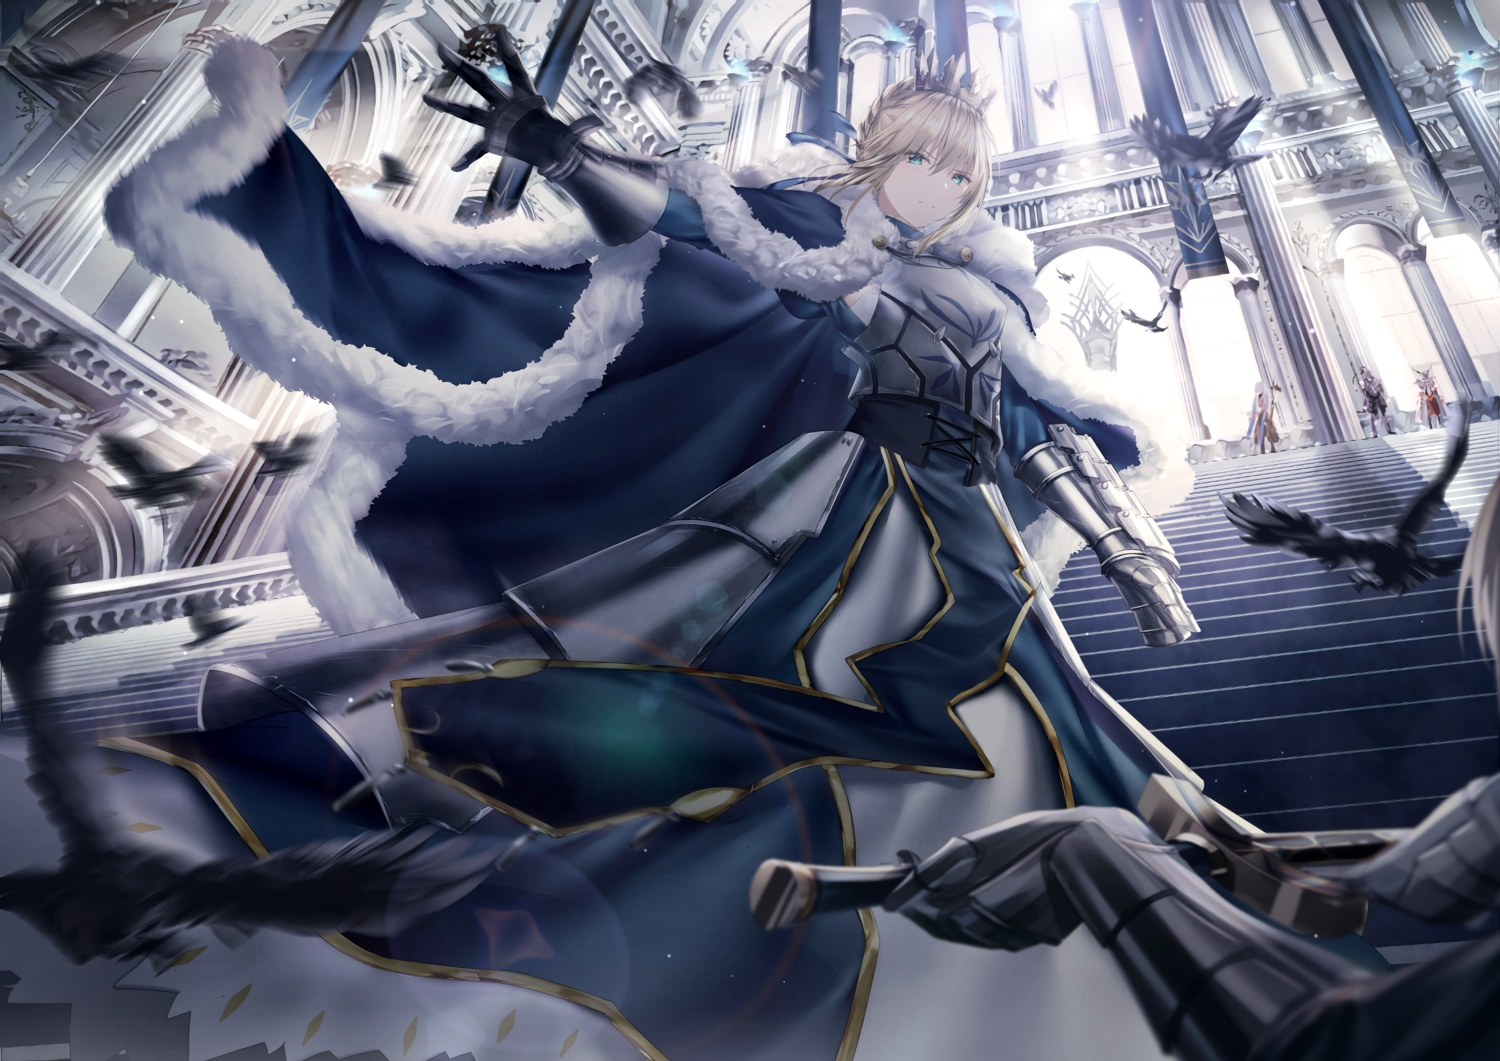 animal armor artoria_pendragon_(all) bird blonde_hair braids cape fate/grand_order fate_(series) feathers junpaku_karen lancelot_(fate) merlin_(fate/grand_order) mordred saber short_hair stairs sword weapon